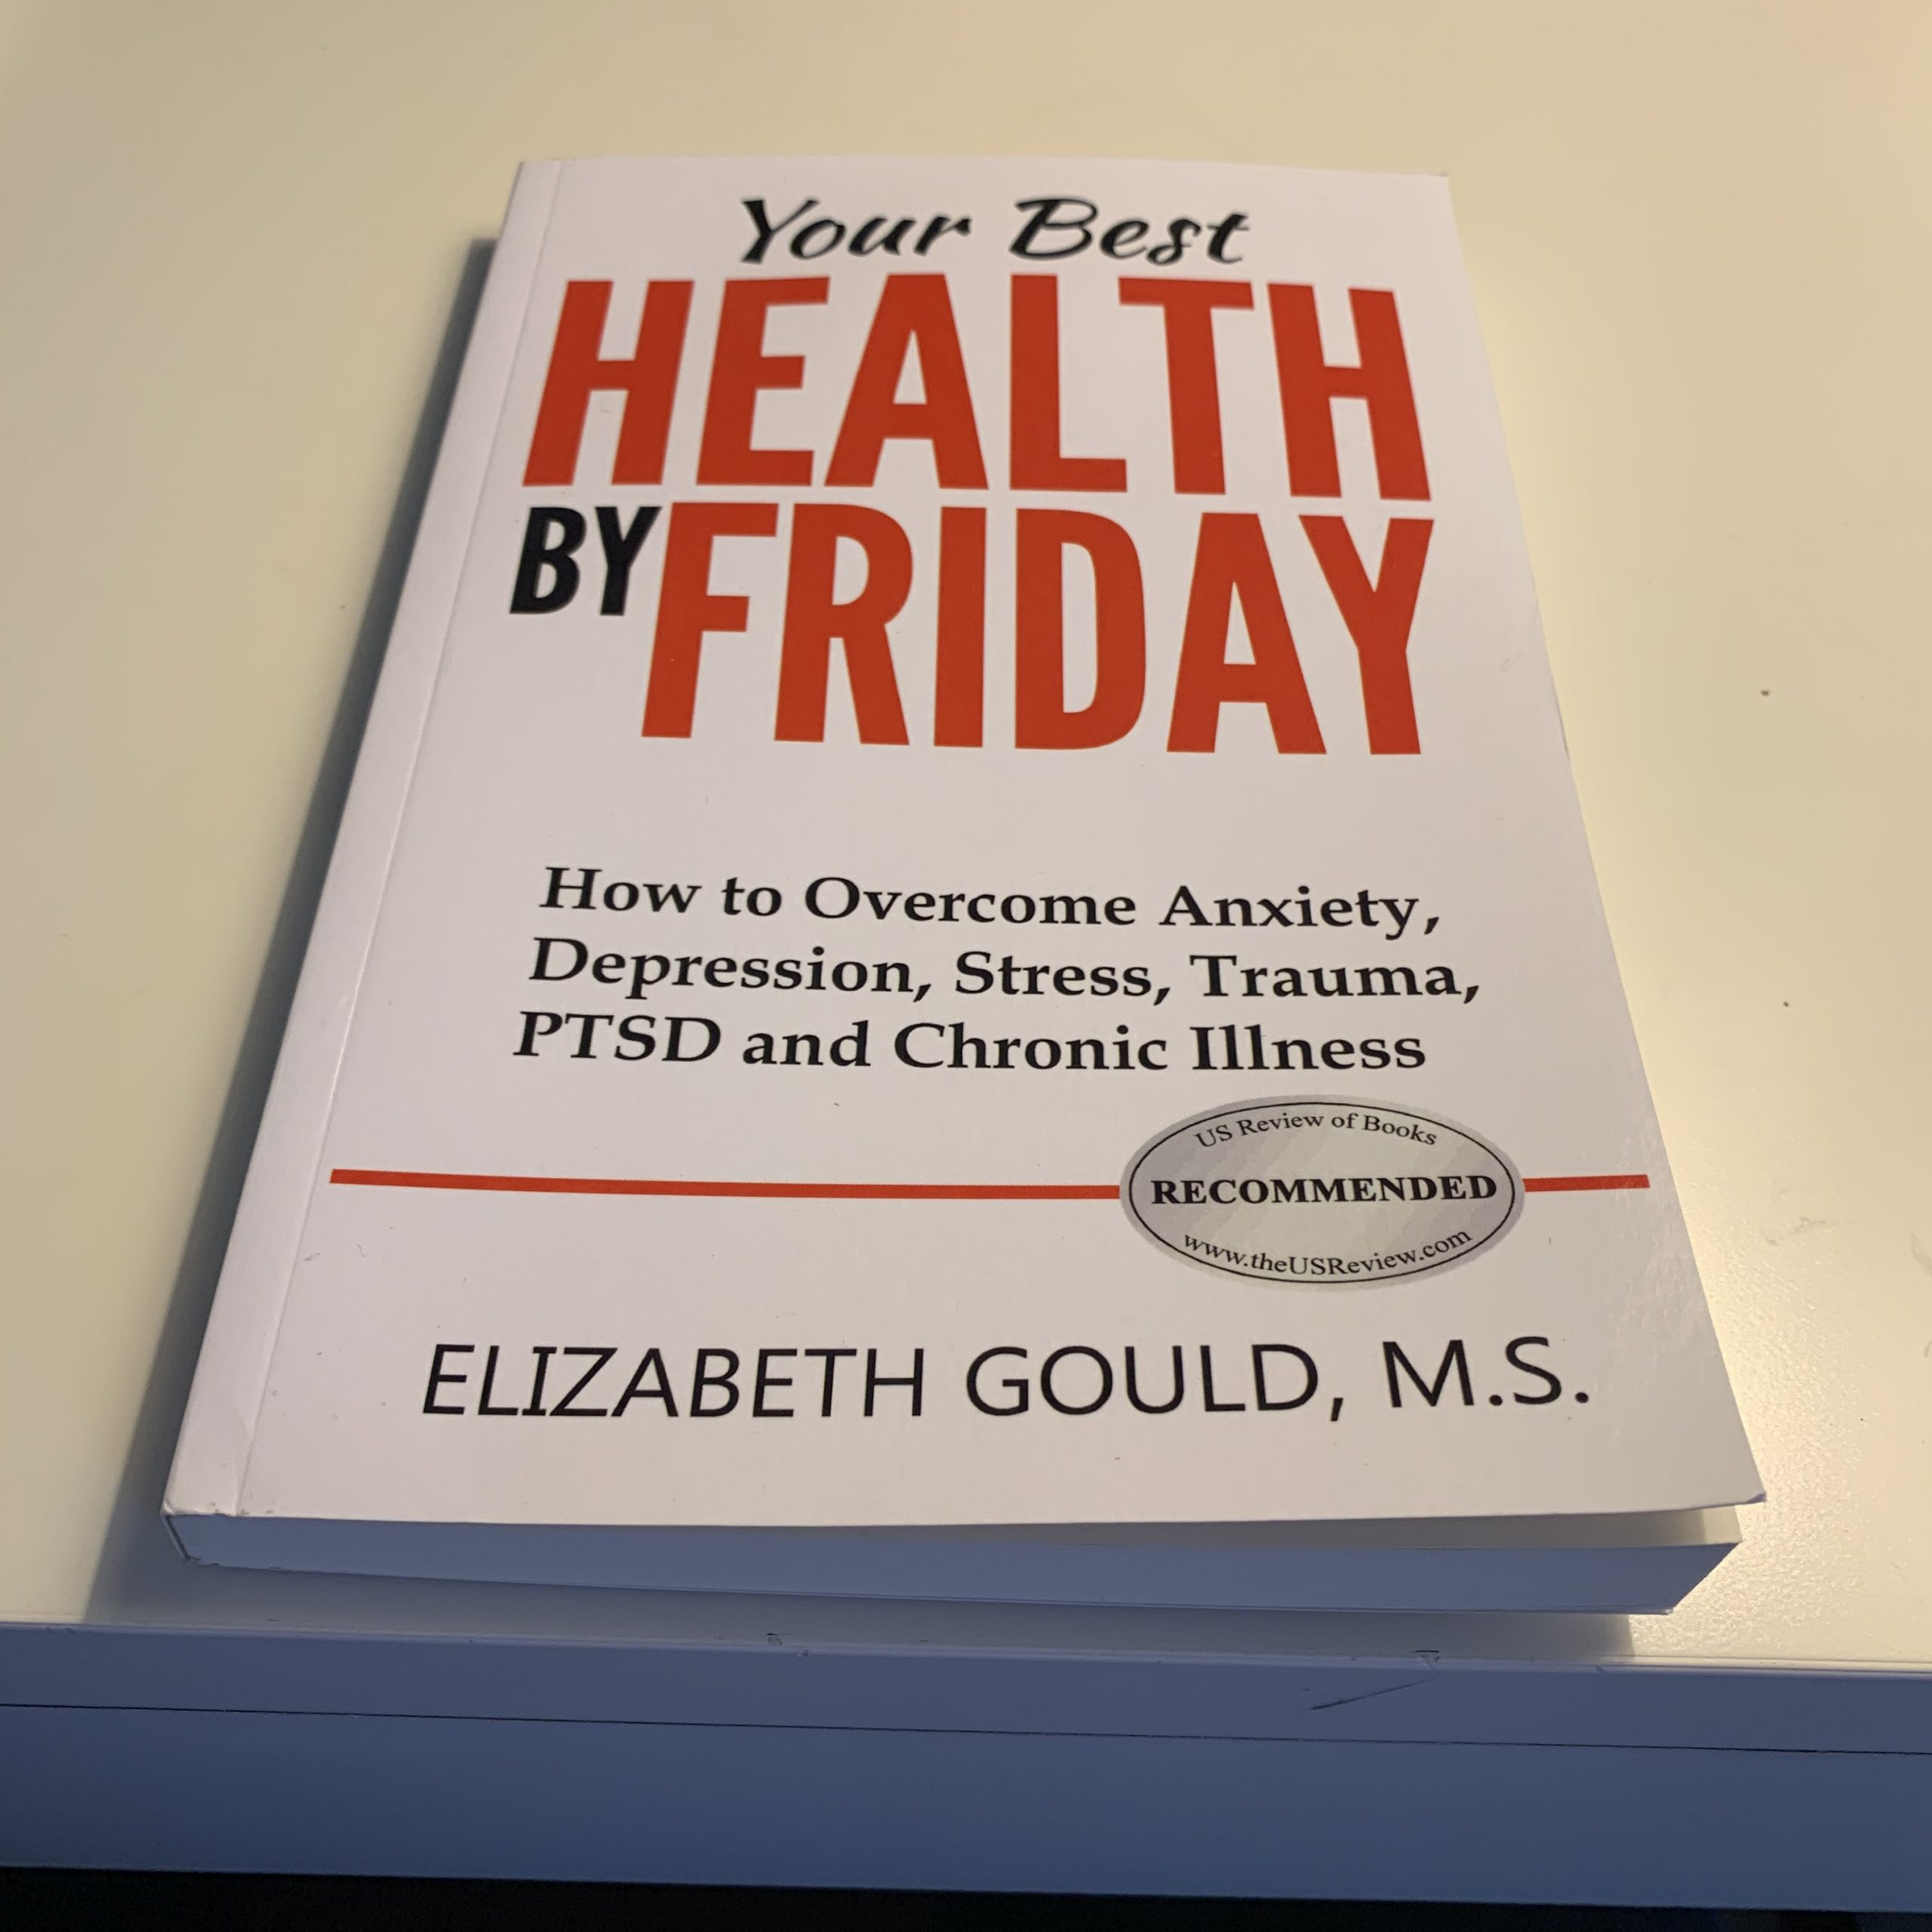 Your Best Health By Friday by Elizabeth Gould